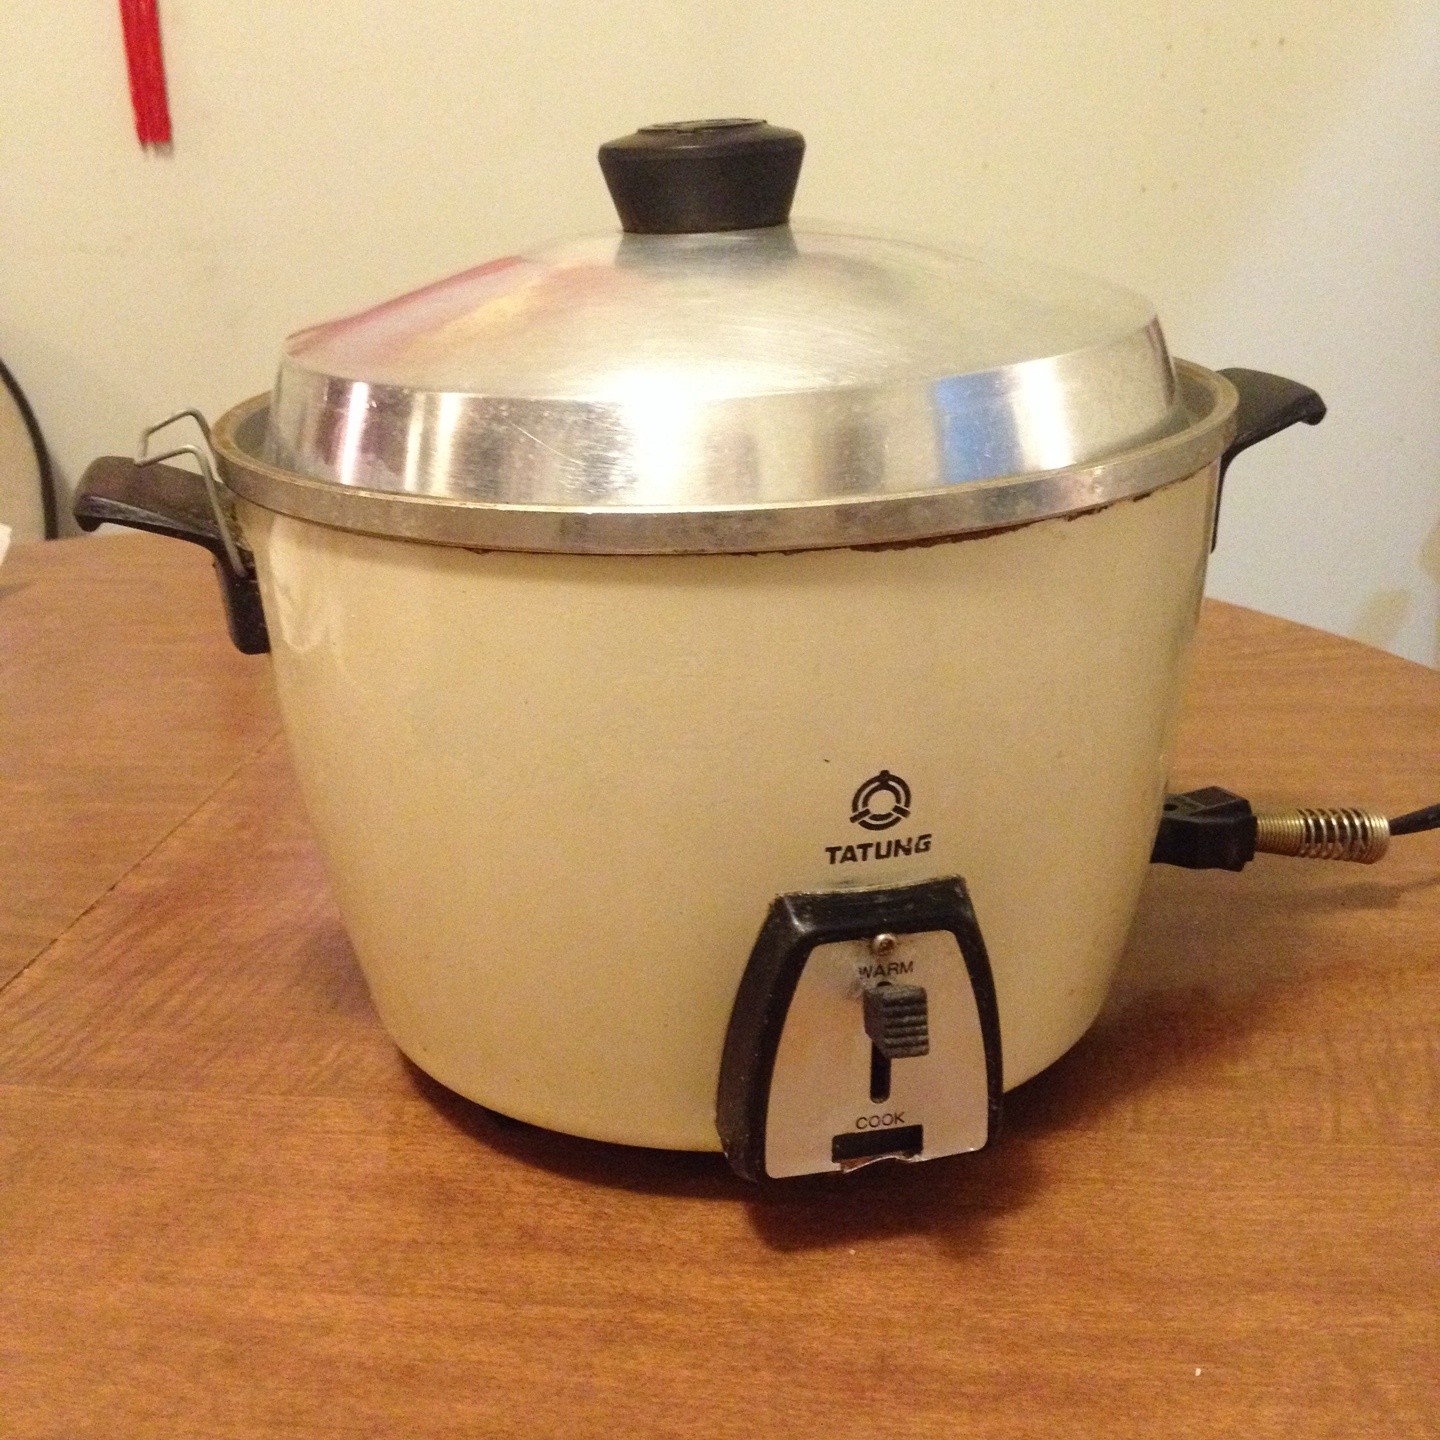 Tatung-branded rice cooker from my parents' house, purchased from a store in Chinatown in Texas